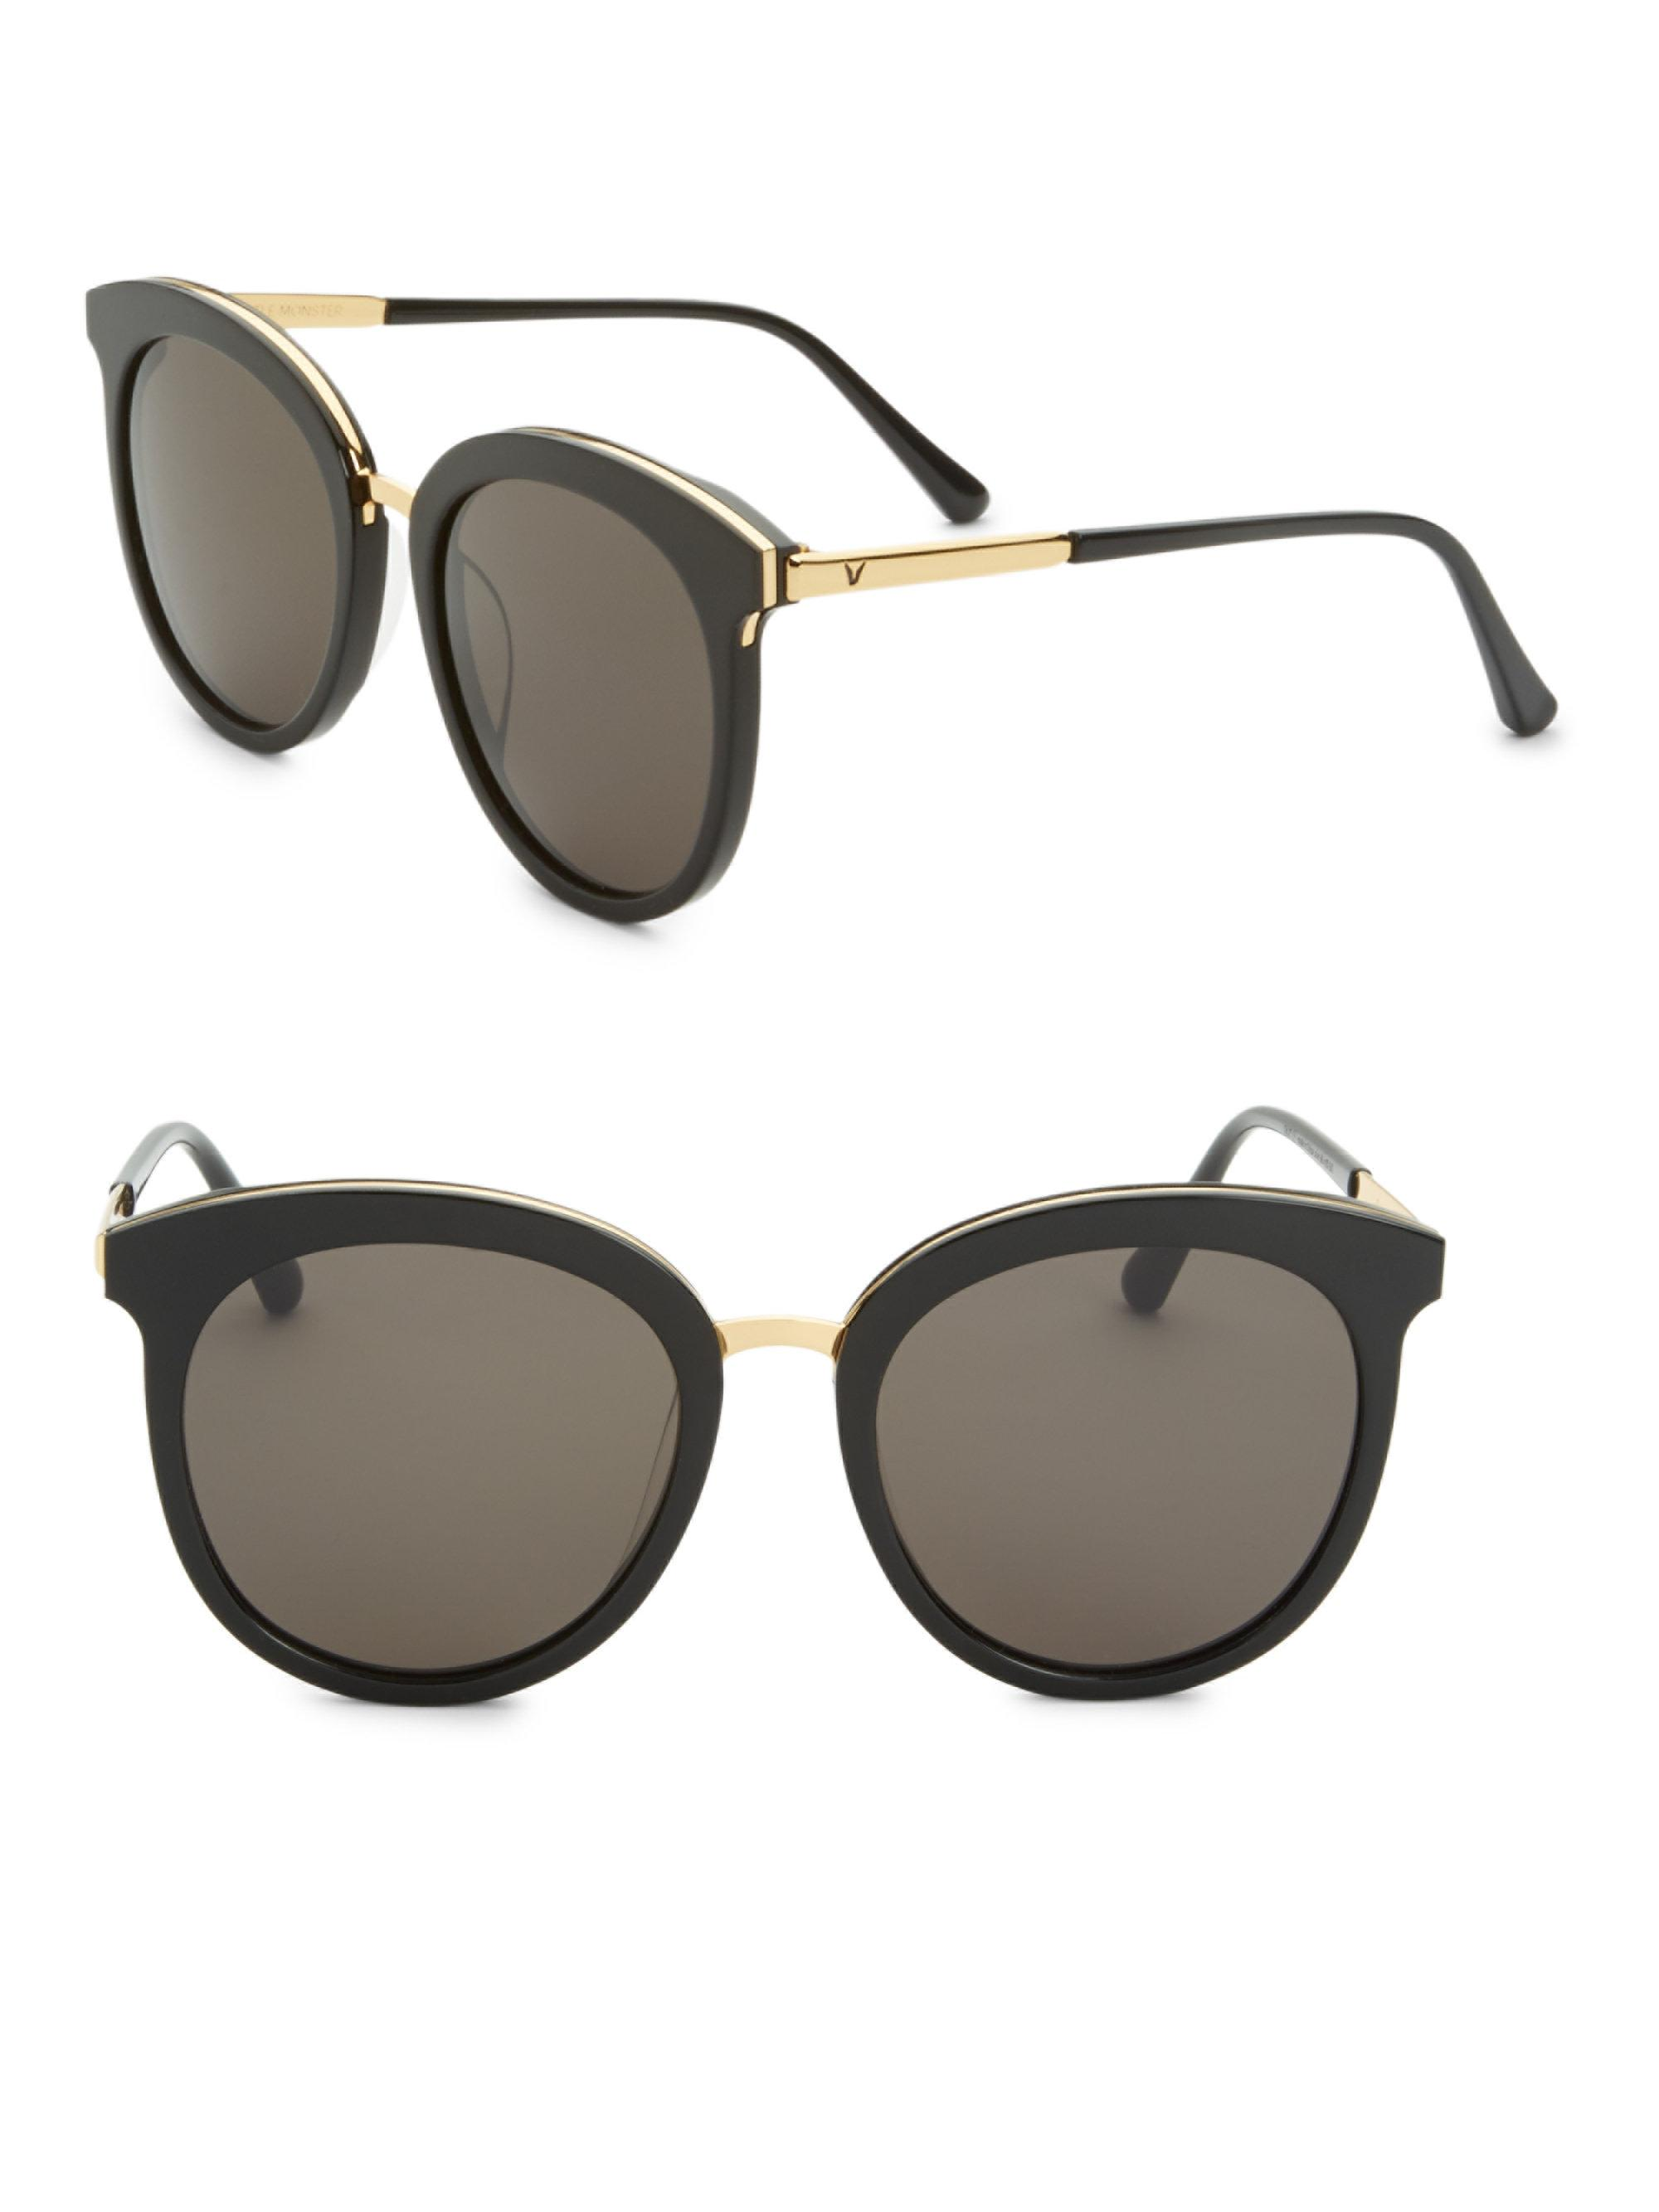 22b08a4d8a8 Lyst - Gentle Monster Someone Tale 55mm Sunglasses in Black